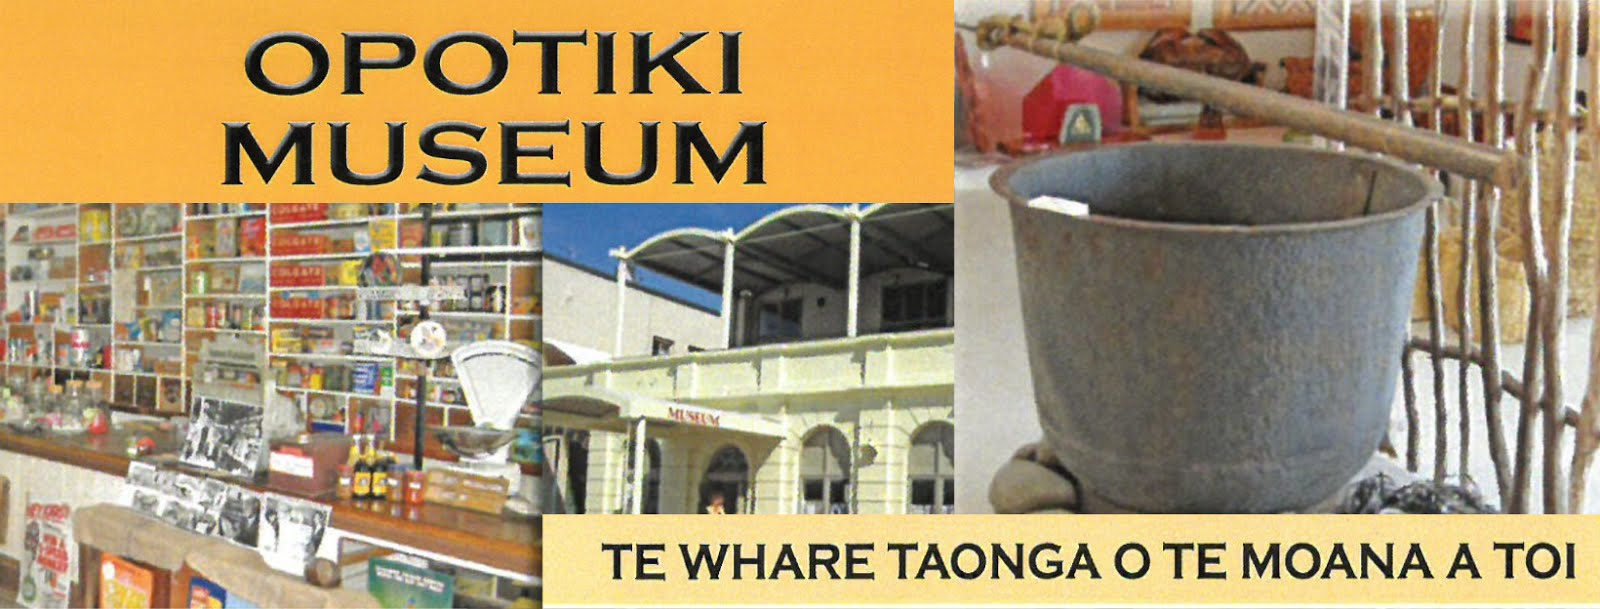 Supported by Ōpōtiki Museum